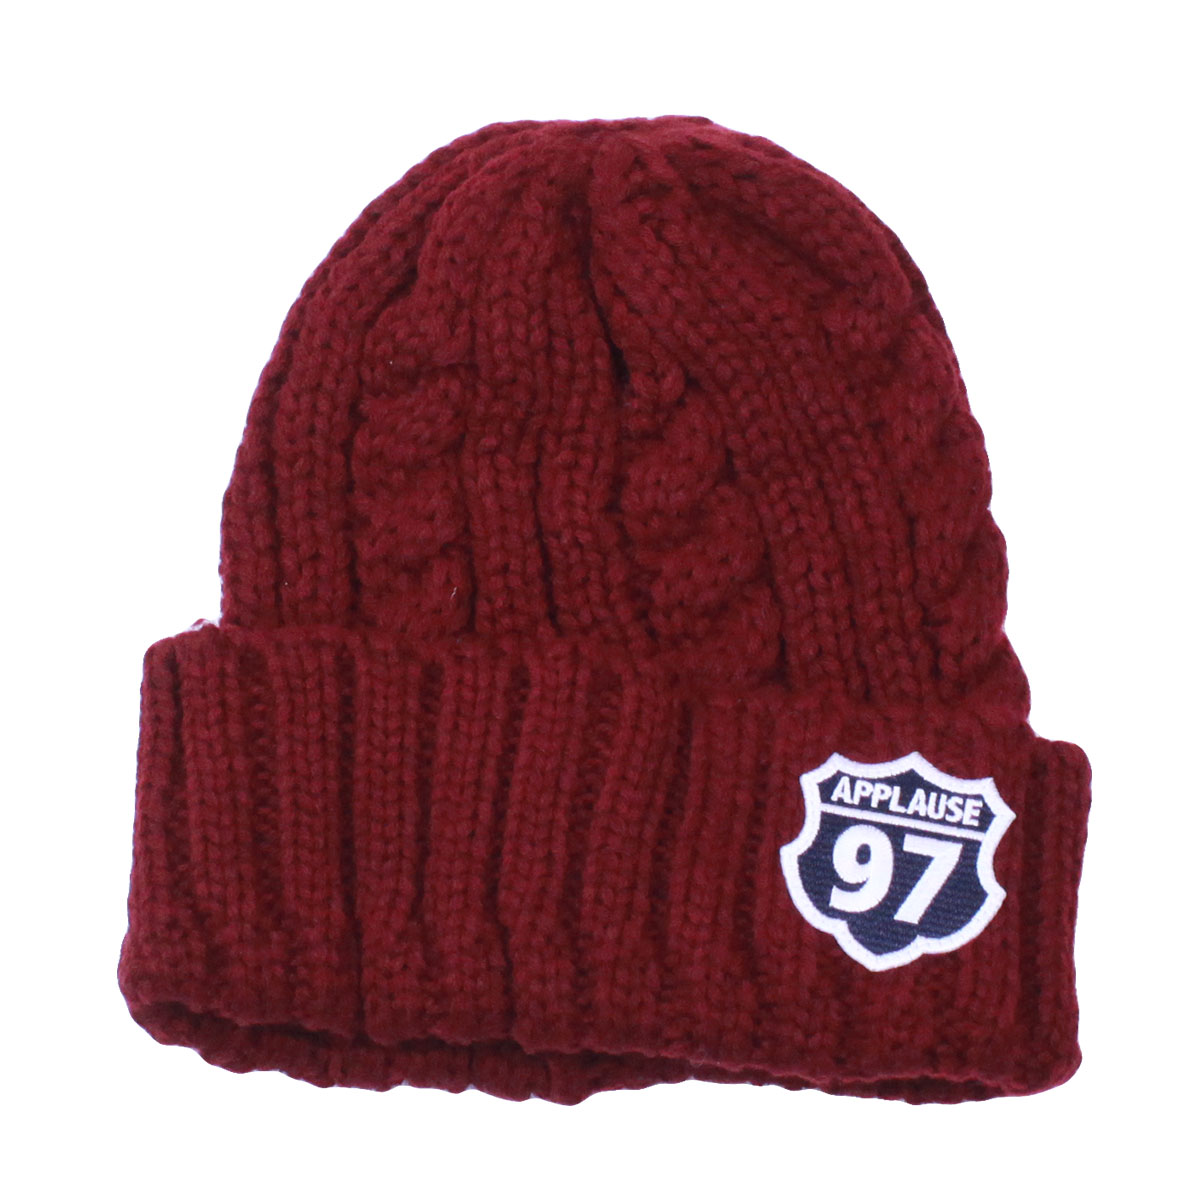 AP97 CABLE Beanie Cap (Bordeaux)